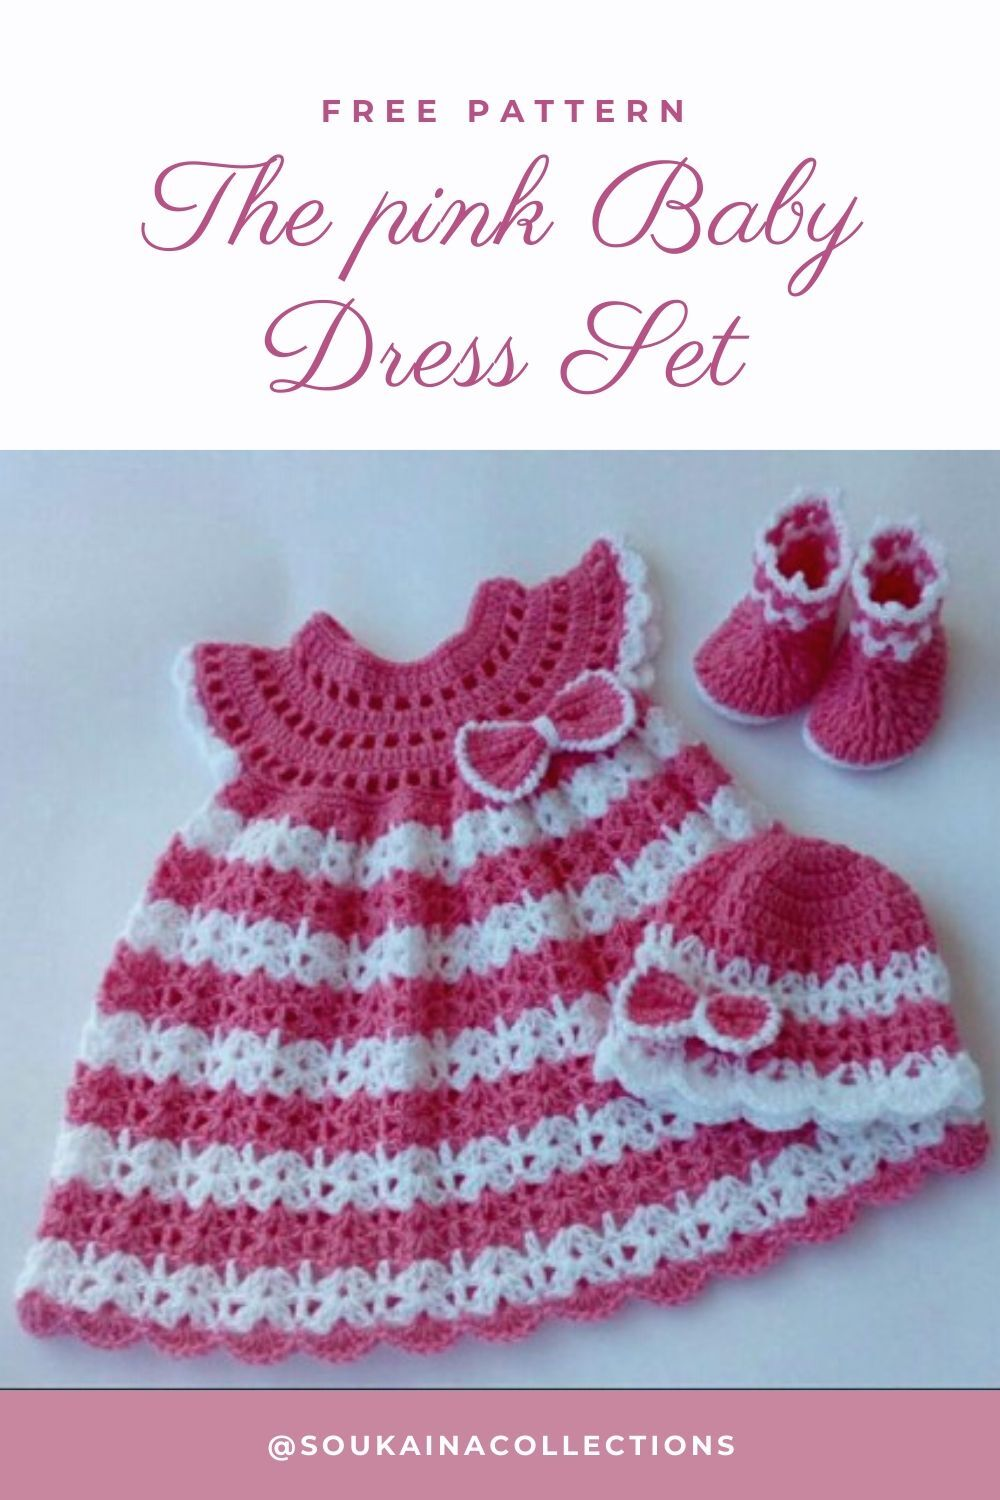 Gorgeous Crochet Baby Dress